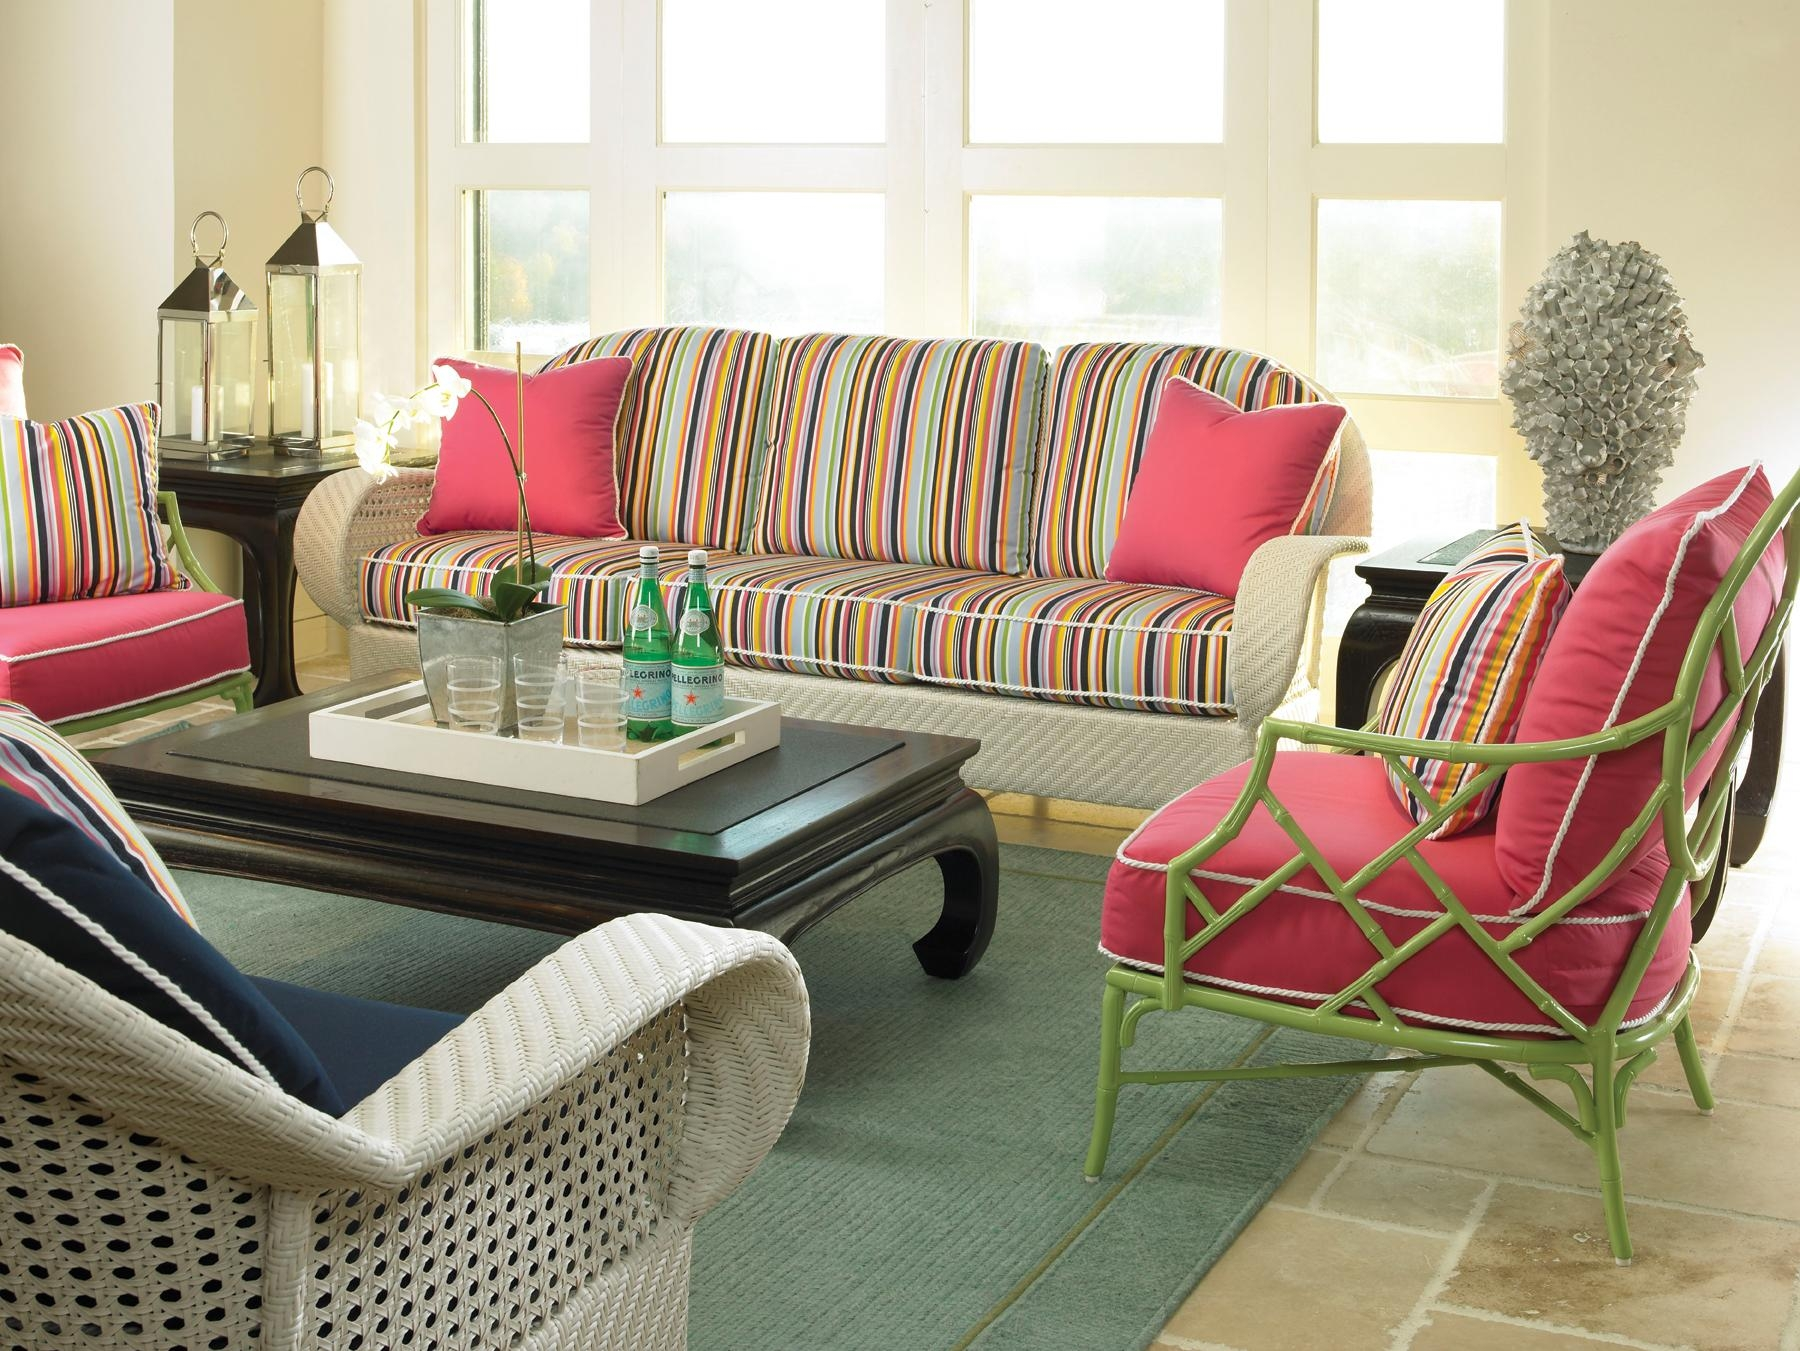 Furniture: Interesting Sunbrella Outdoor Furniture For Patio With Regard To Striped Sofas And Chairs (View 8 of 20)